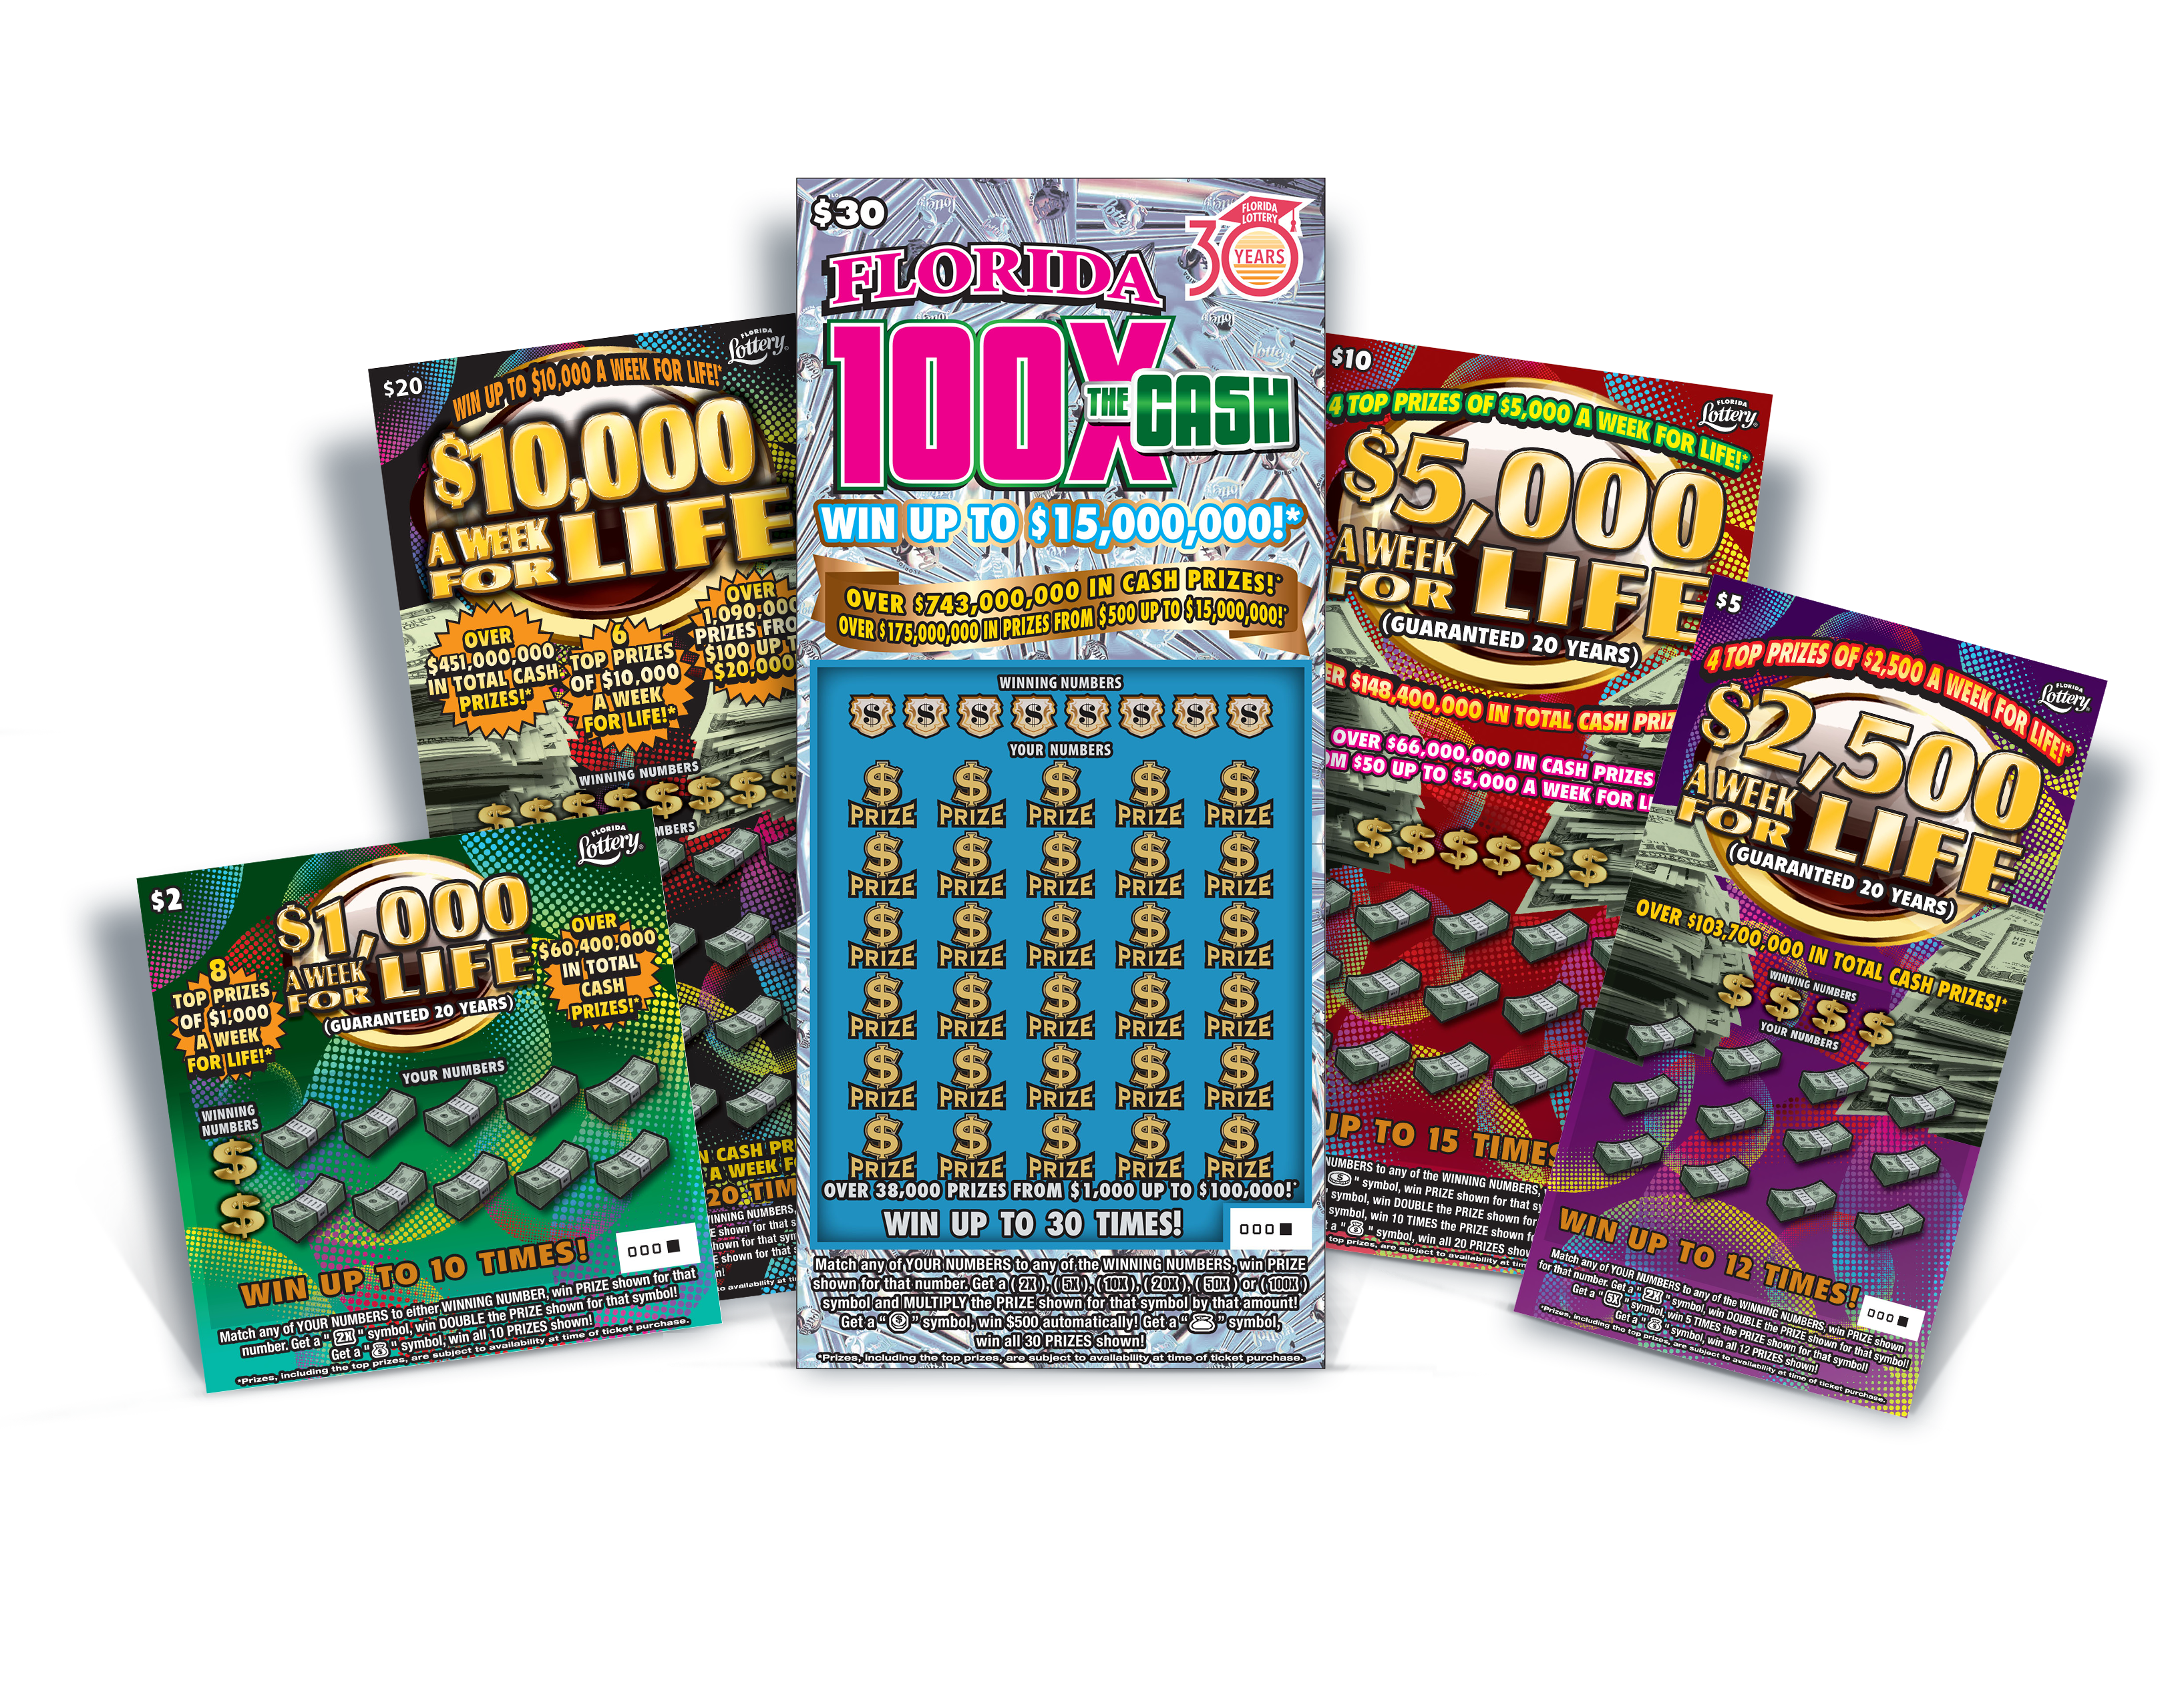 Lottery giant wins another big award